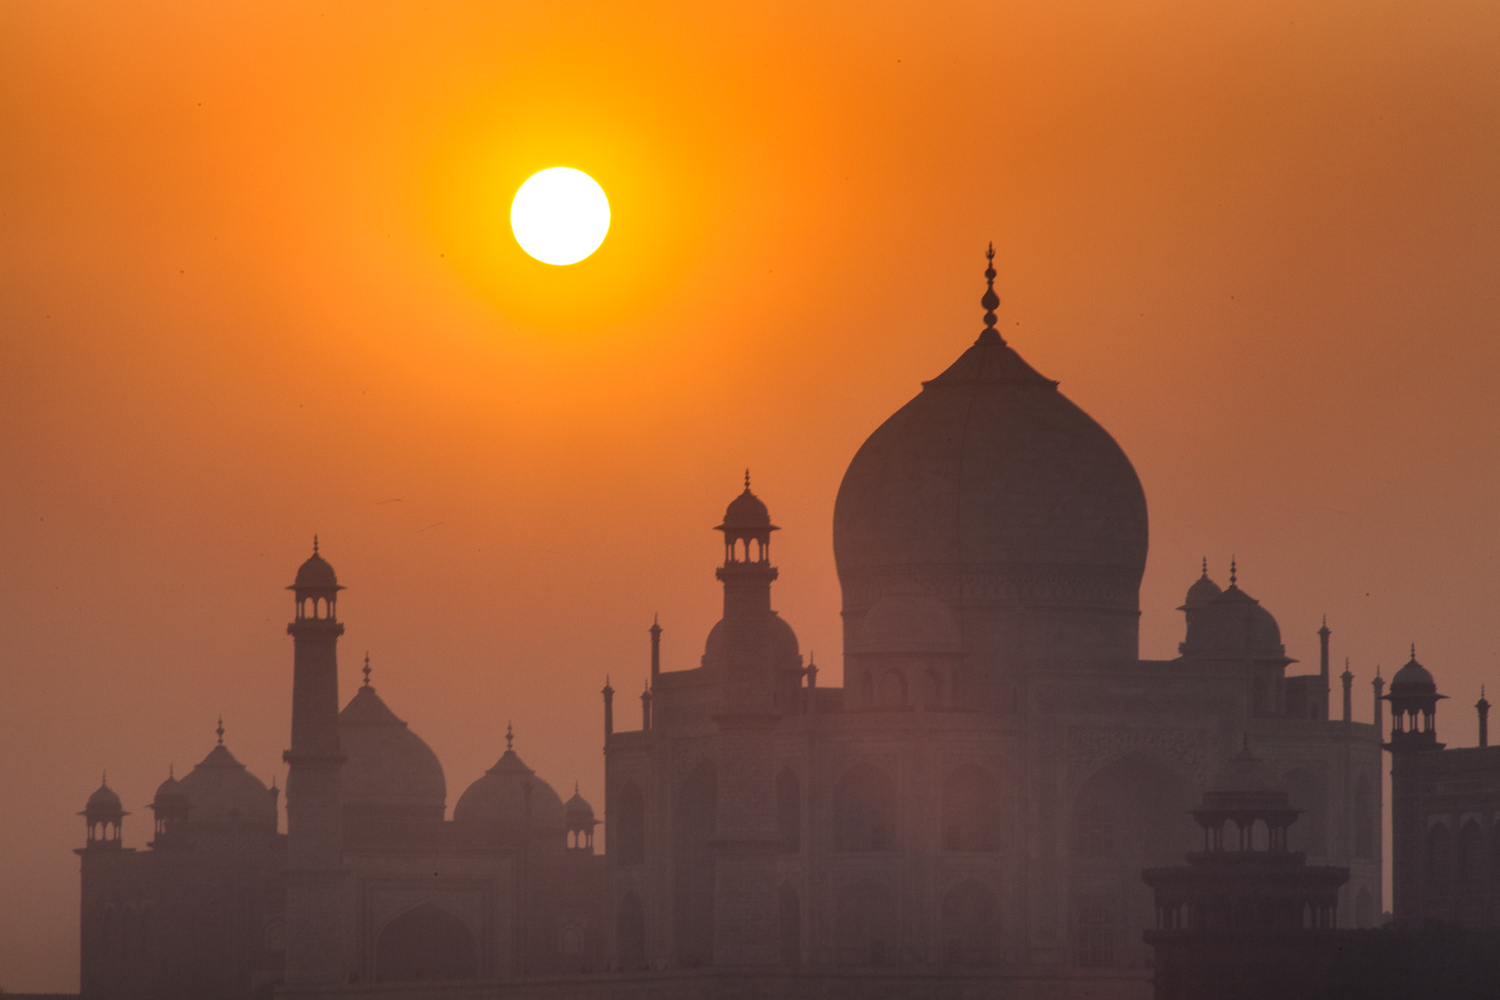 Image: Taj Mahal, India